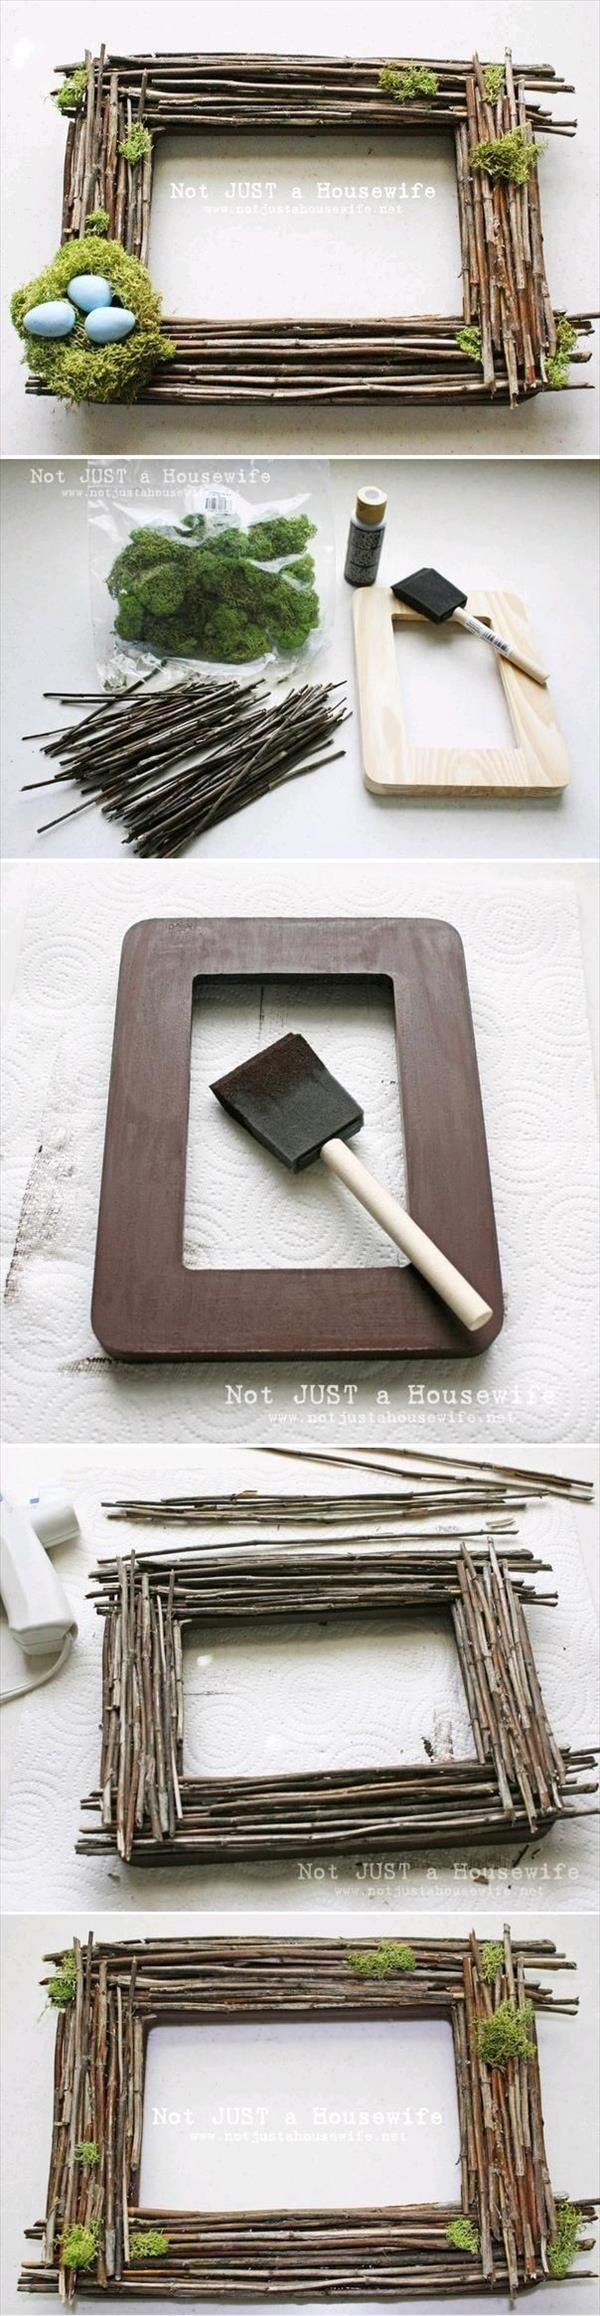 Diy spring frame pinned by afloral from httpnewnist diy spring frame pinned by afloral from http solutioingenieria Images